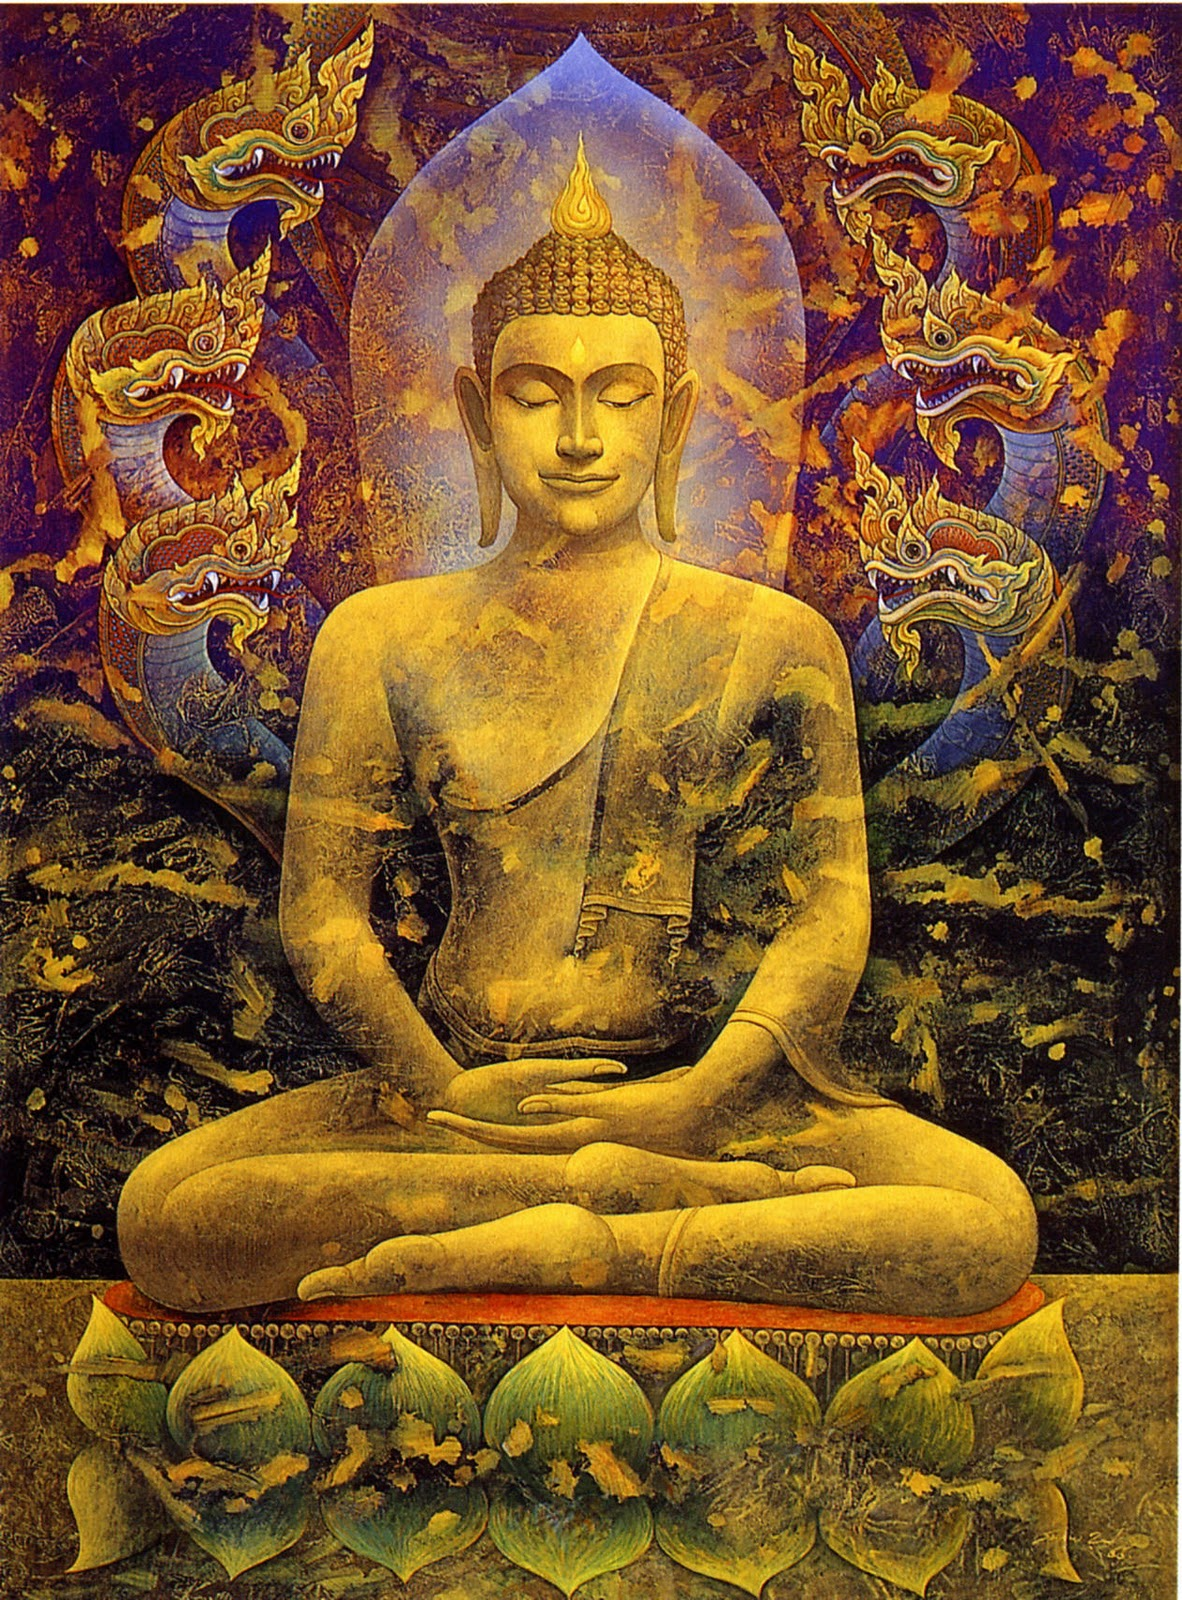 Buddhist practices today